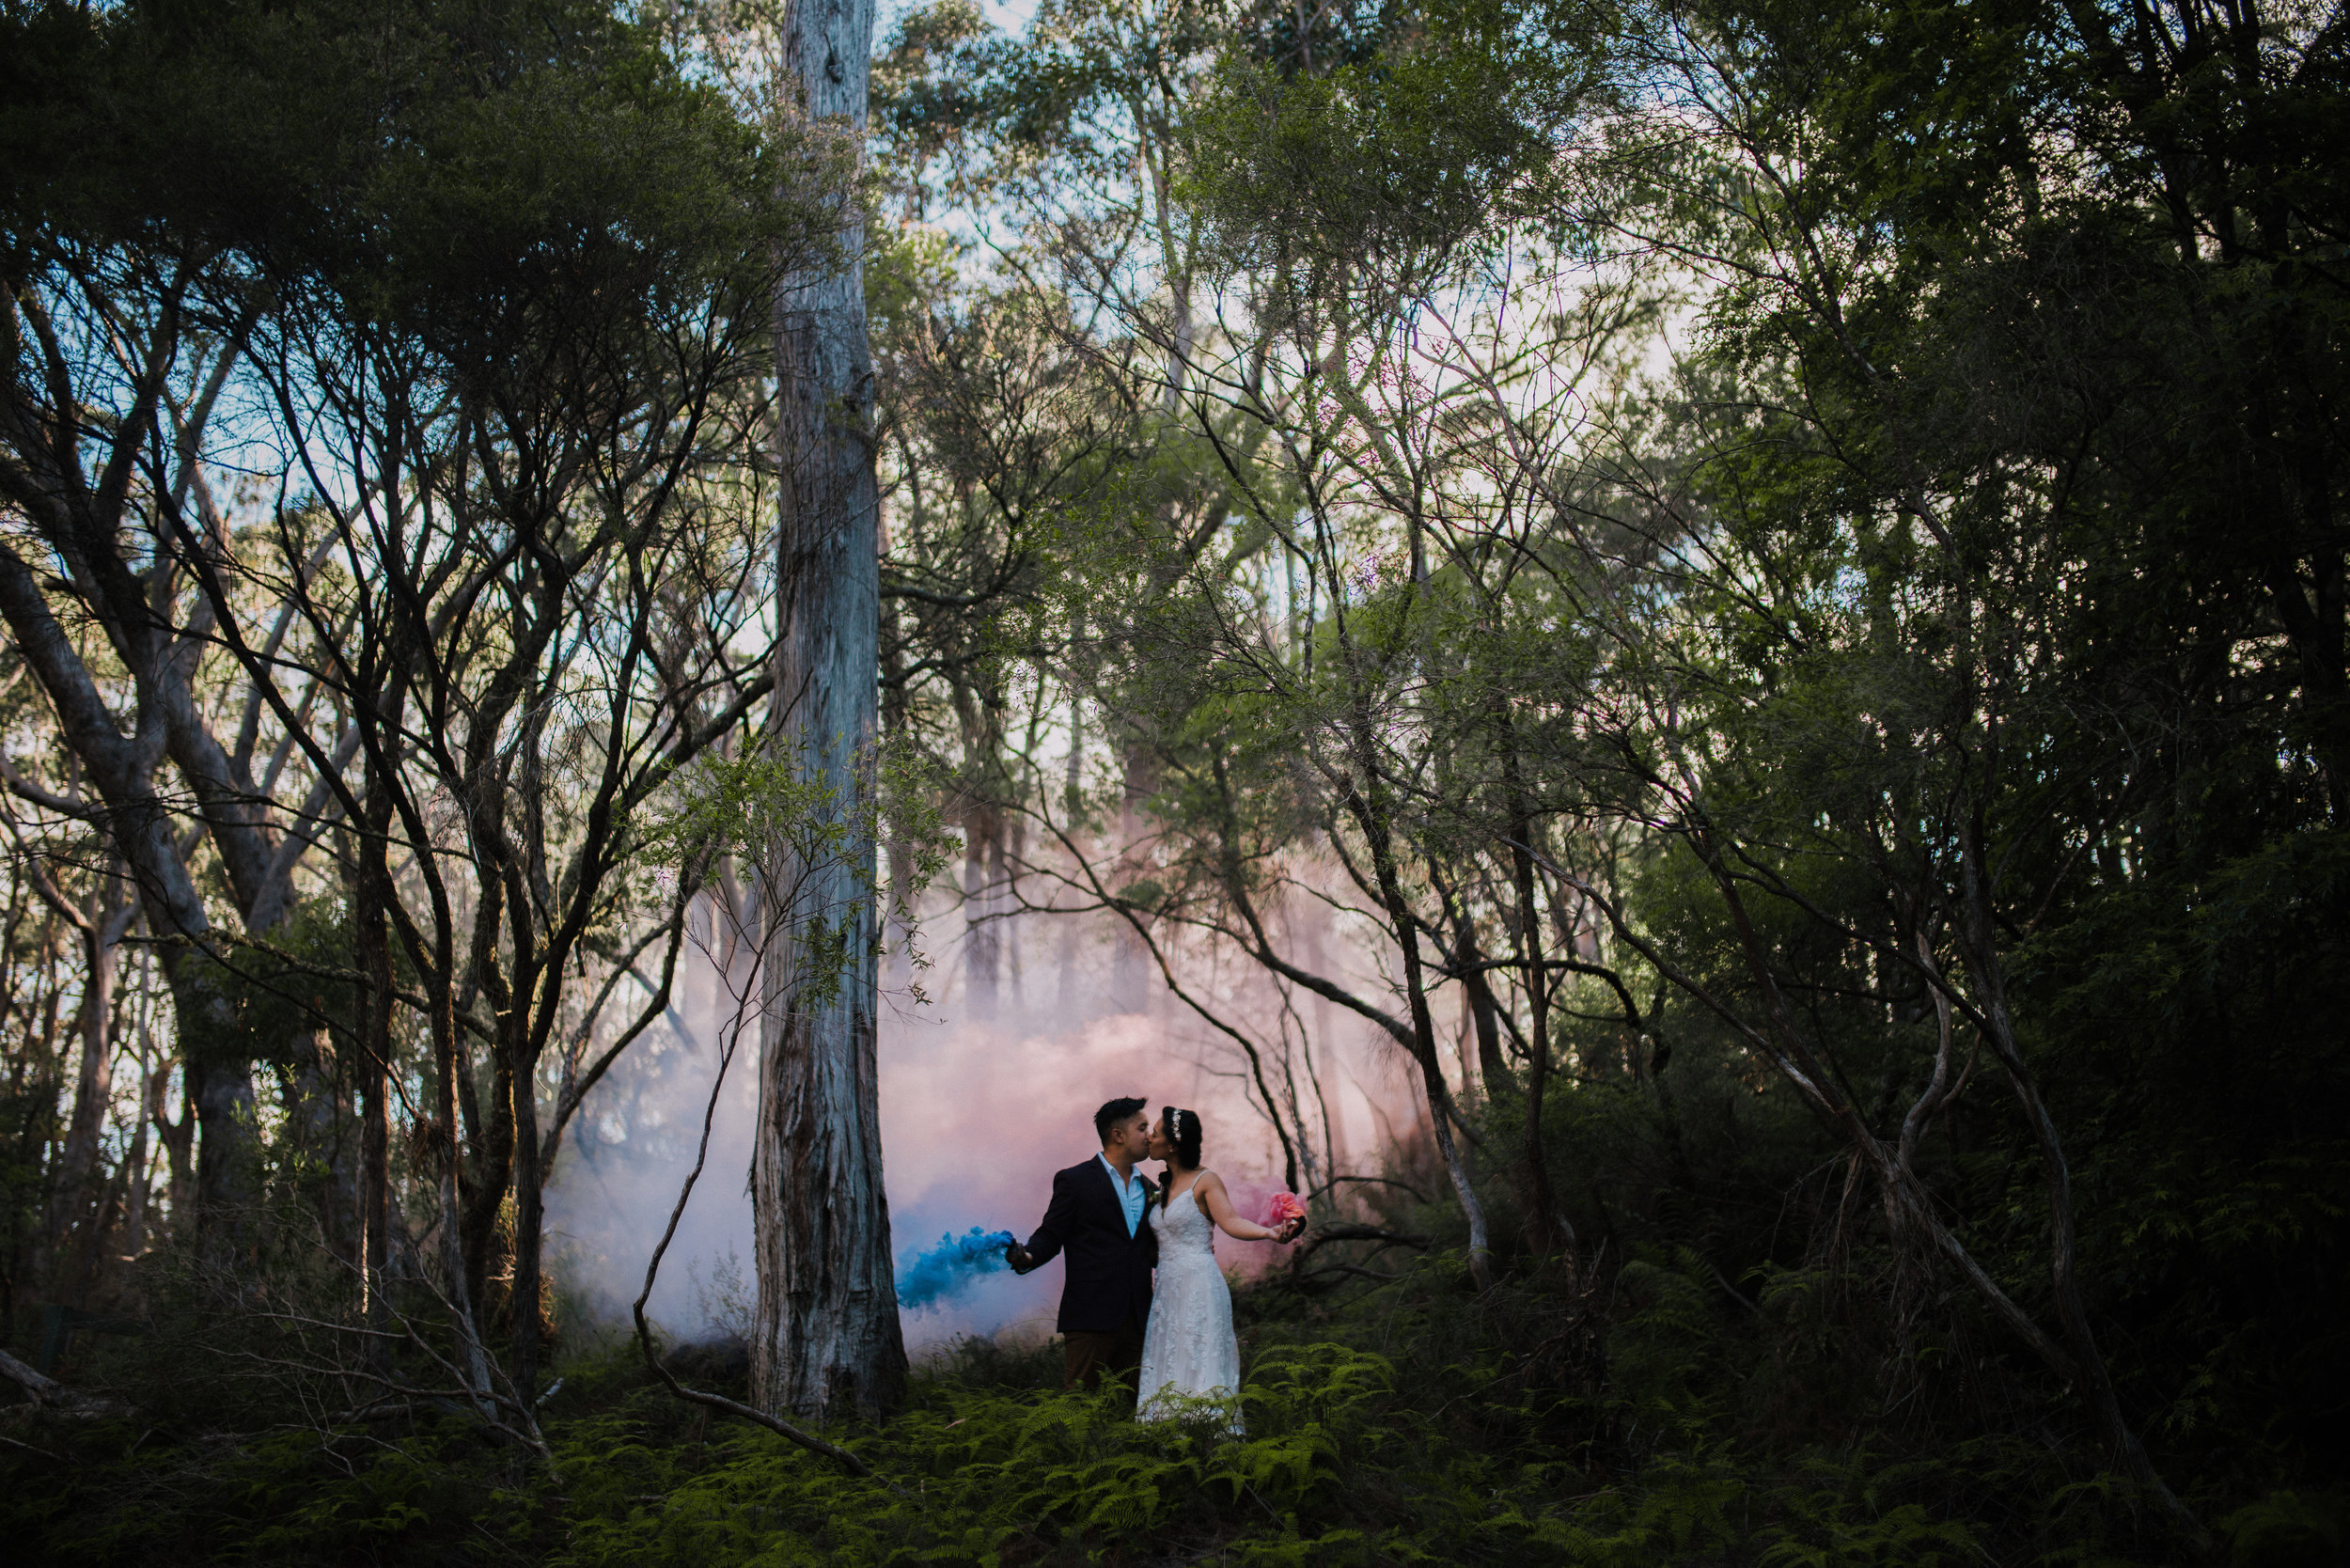 Bohemian Dreams - Southern Highlands Styled Elopement    3rd December 2017